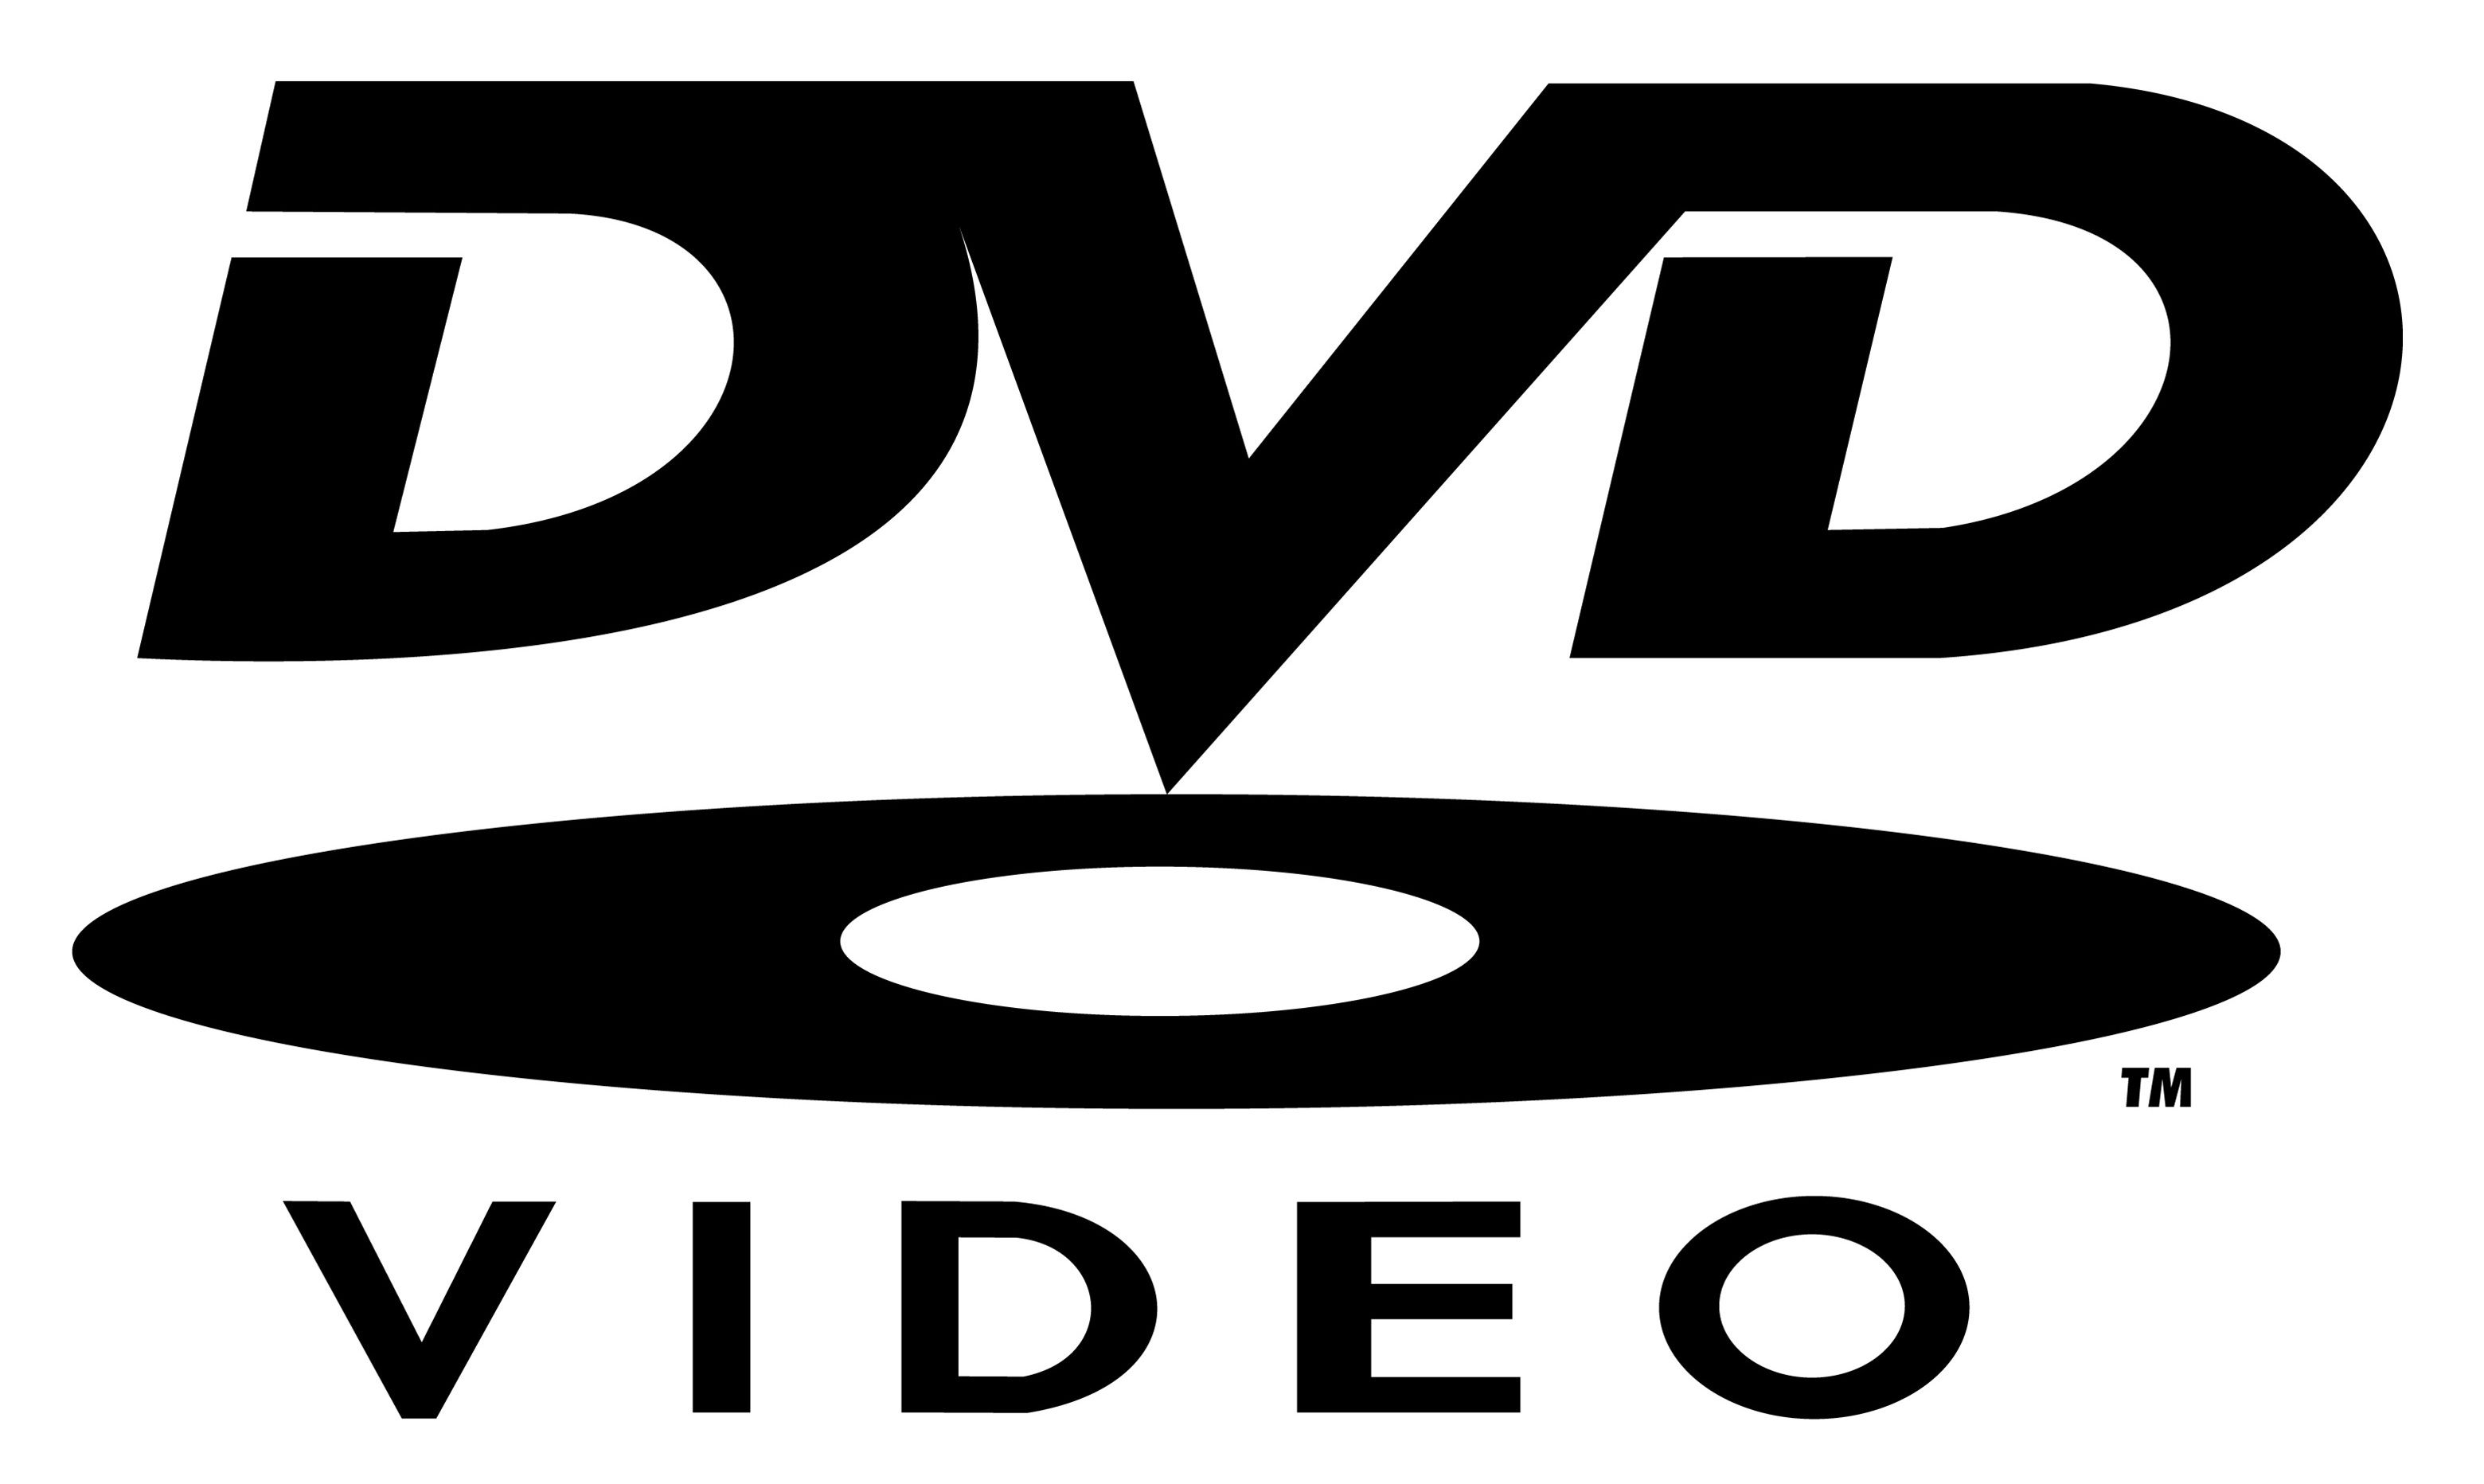 dvd video logo clipart best database clipart png database clipart powerpoint